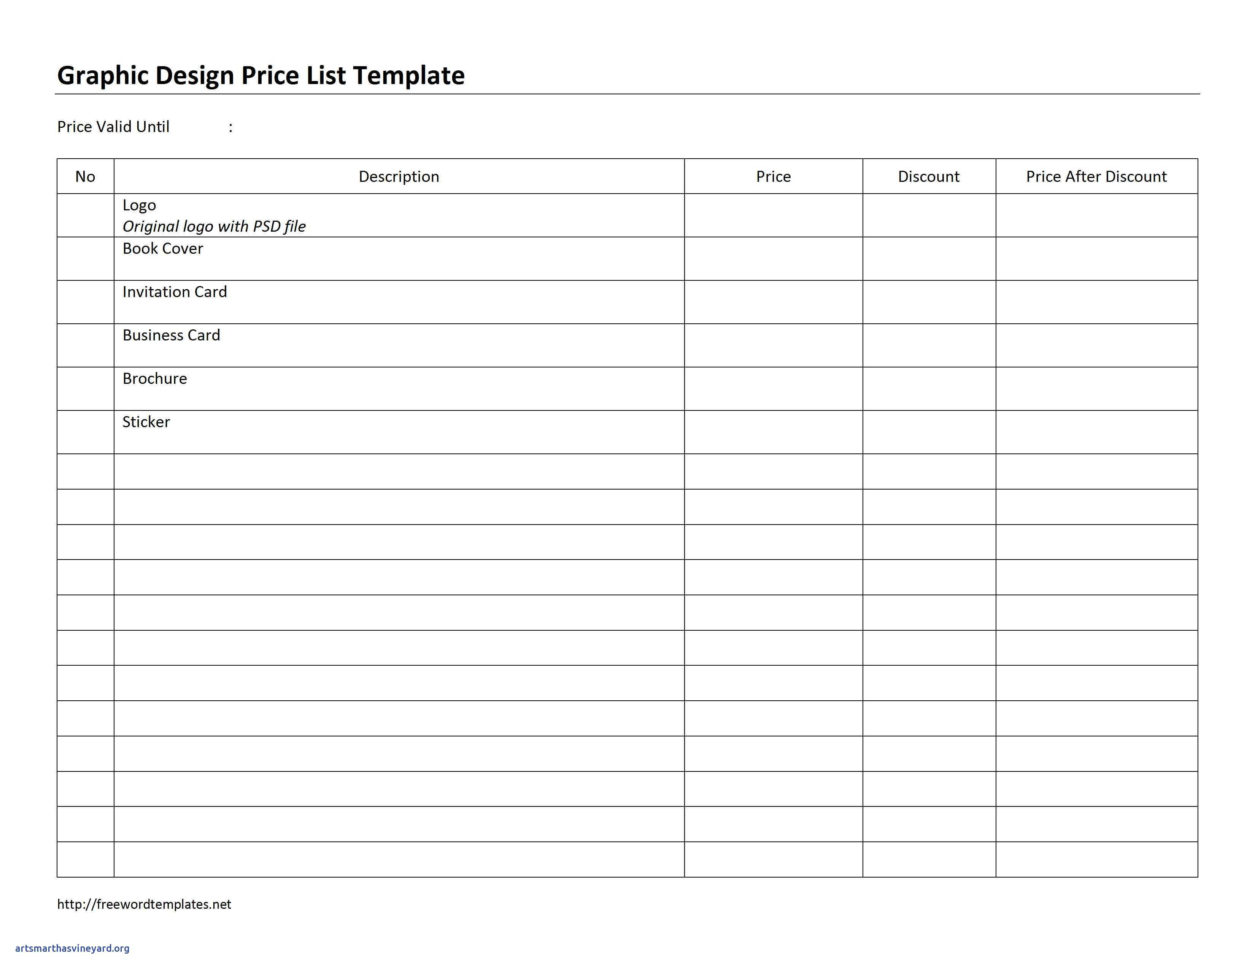 Construction Cost Spreadsheet Intended For Construction Cost Spreadsheet Template And Construction Job Costing